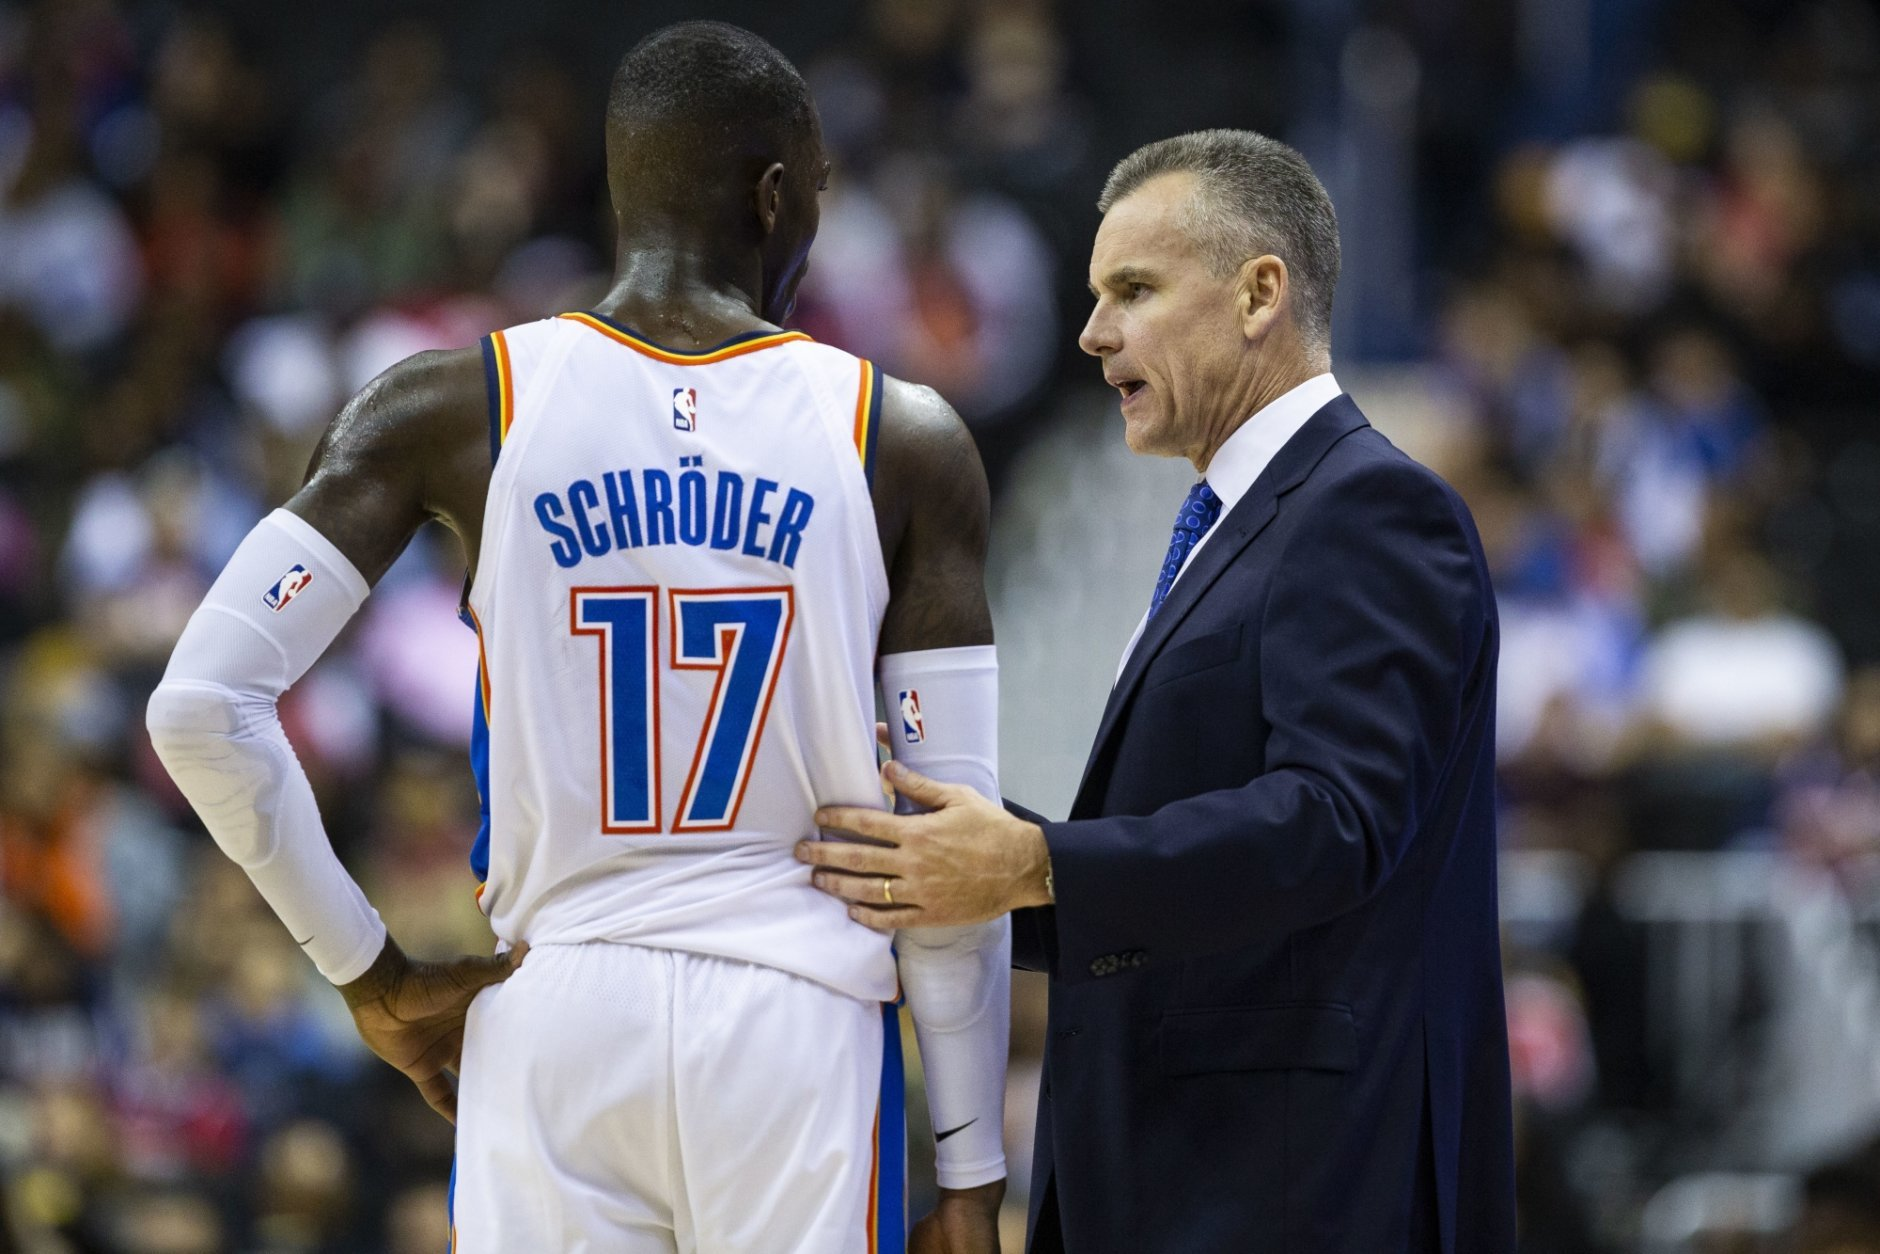 Oklahoma City Thunder coach Billy Donovan speaks with guard Dennis Schroeder during the second half the team's NBA basketball game against the Washington Wizards on Friday, Nov. 2, 2018, in Washington. The Thunder won 134-111. (AP Photo/Al Drago)